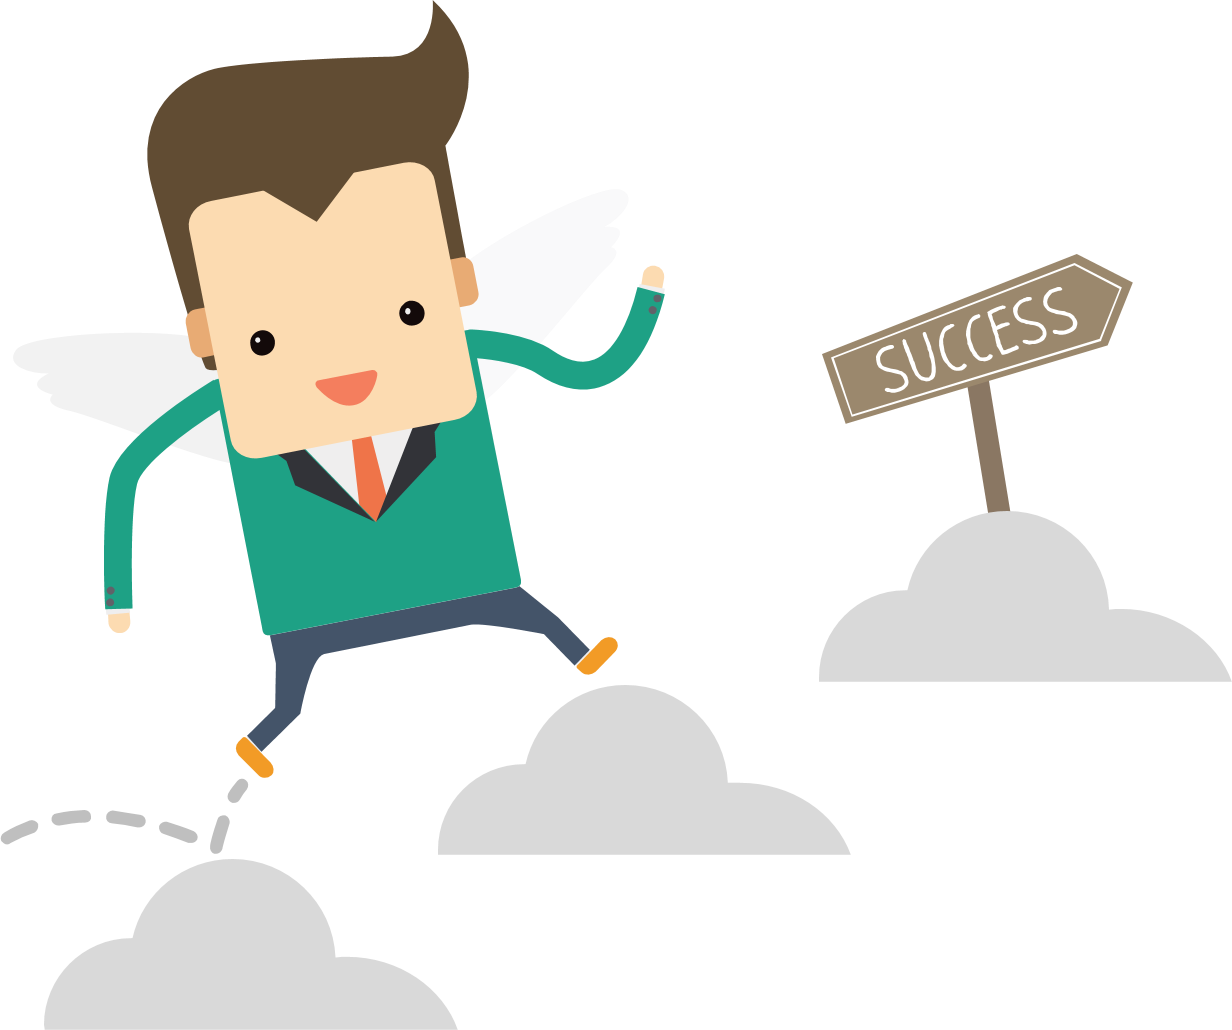 Success clipart. Doing clip arts for